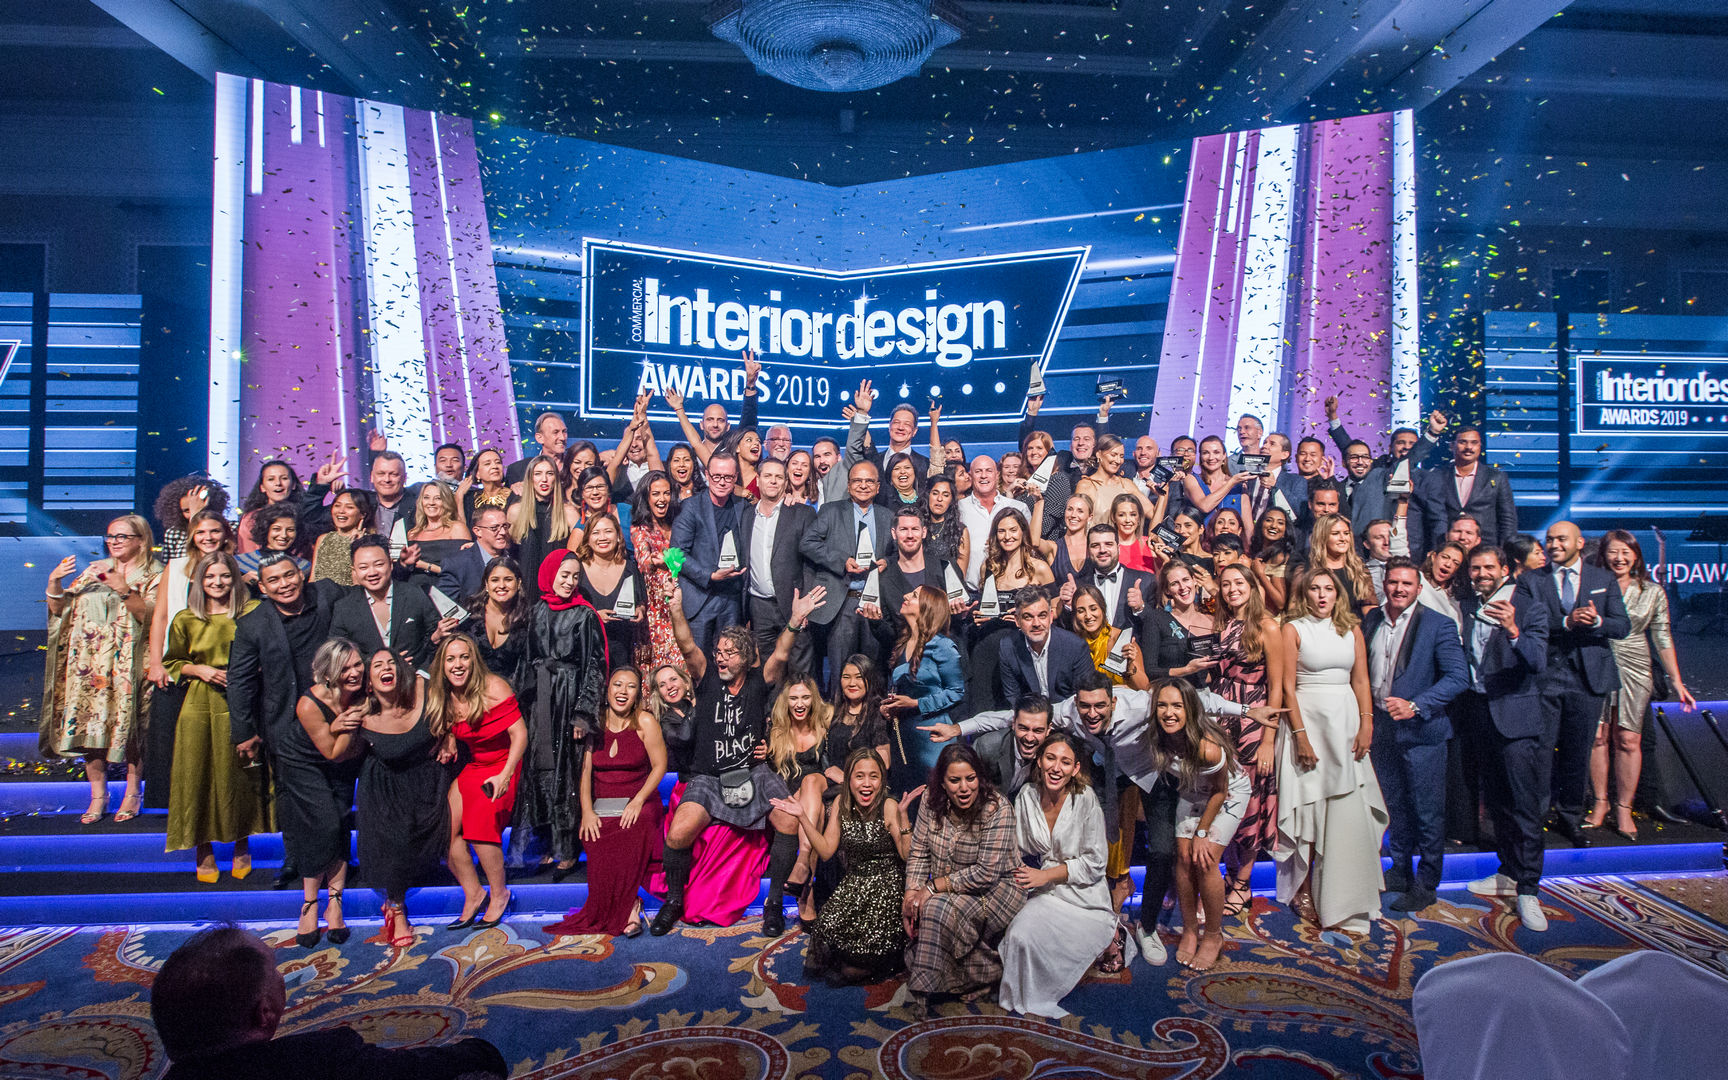 Winners announced for the 2019 CID Awards